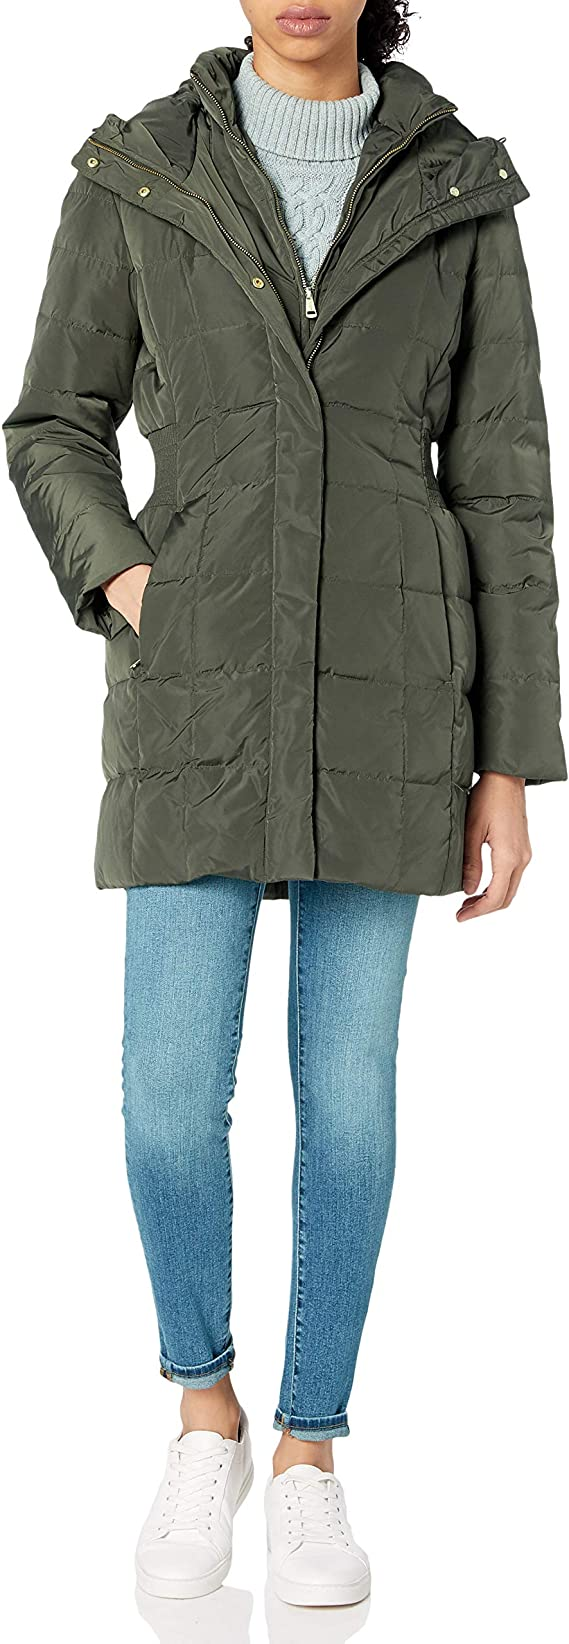 Cole Haan Womens Taffeta Down Coat with Bib